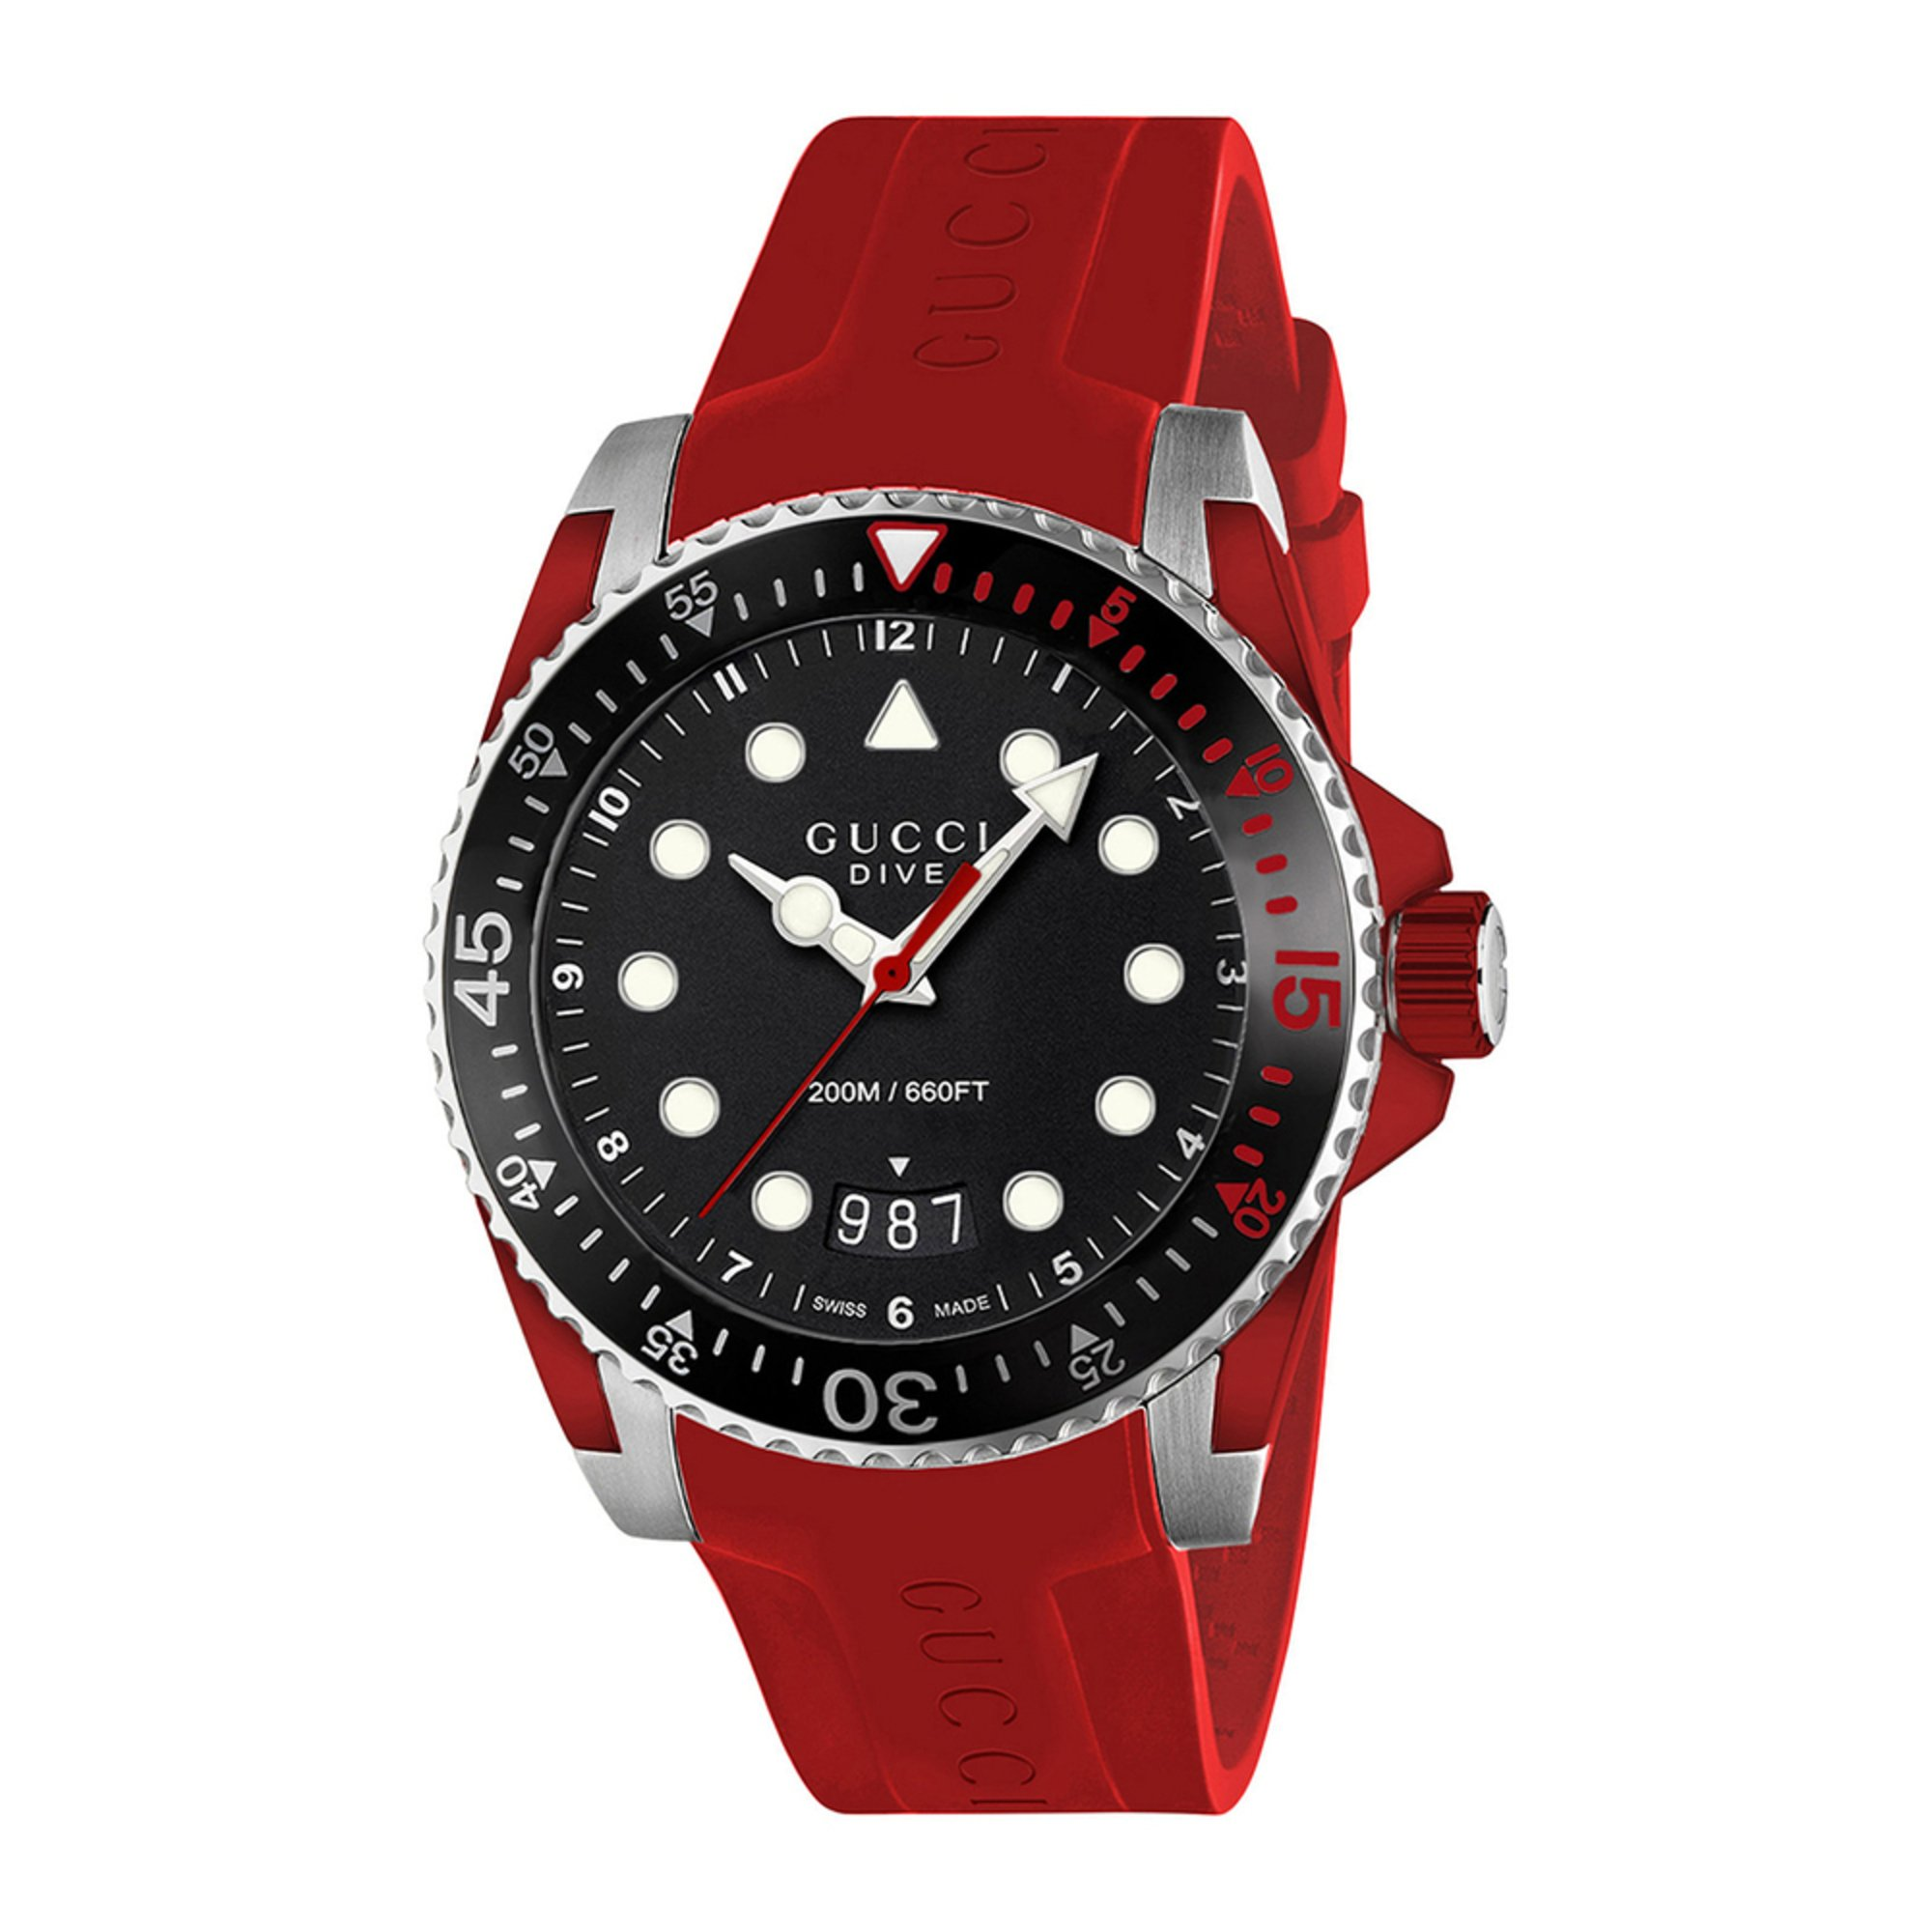 Gucci men 39 s swiss dive black red rubber strap watch 40mm - 40mm dive watch ...